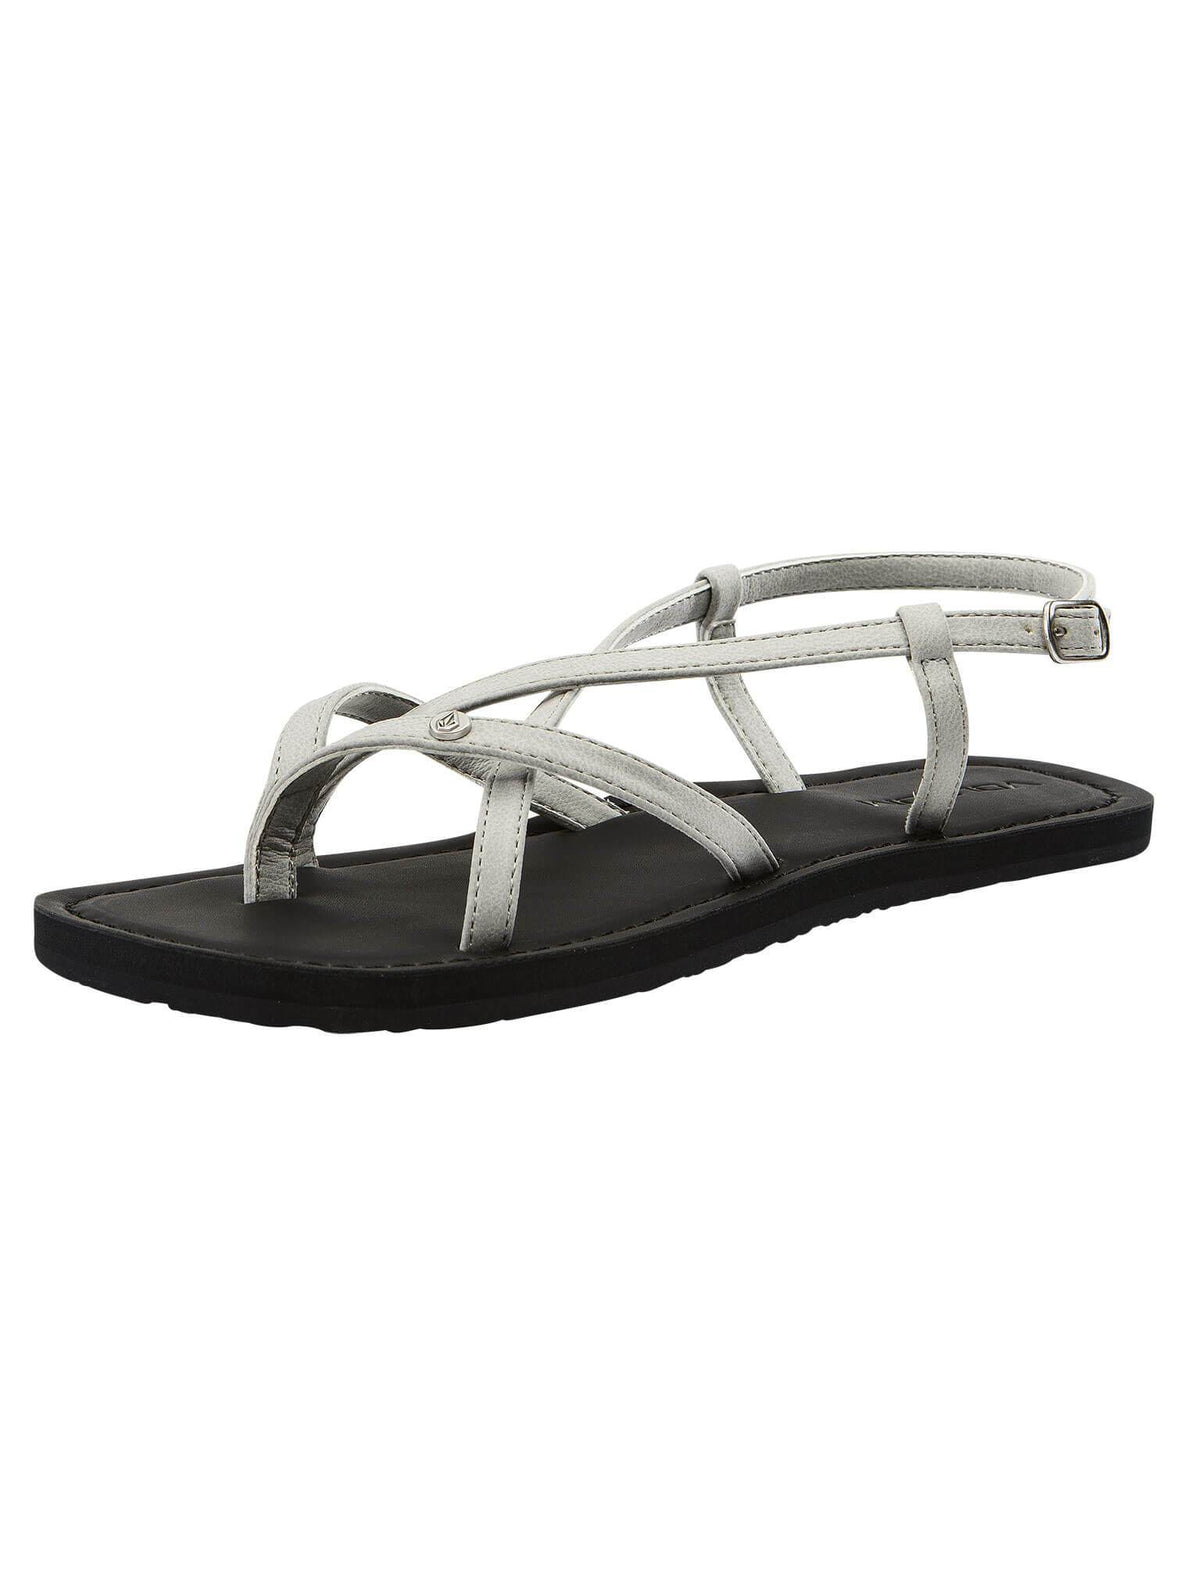 Tavira Sandals In Light Grey, Back View